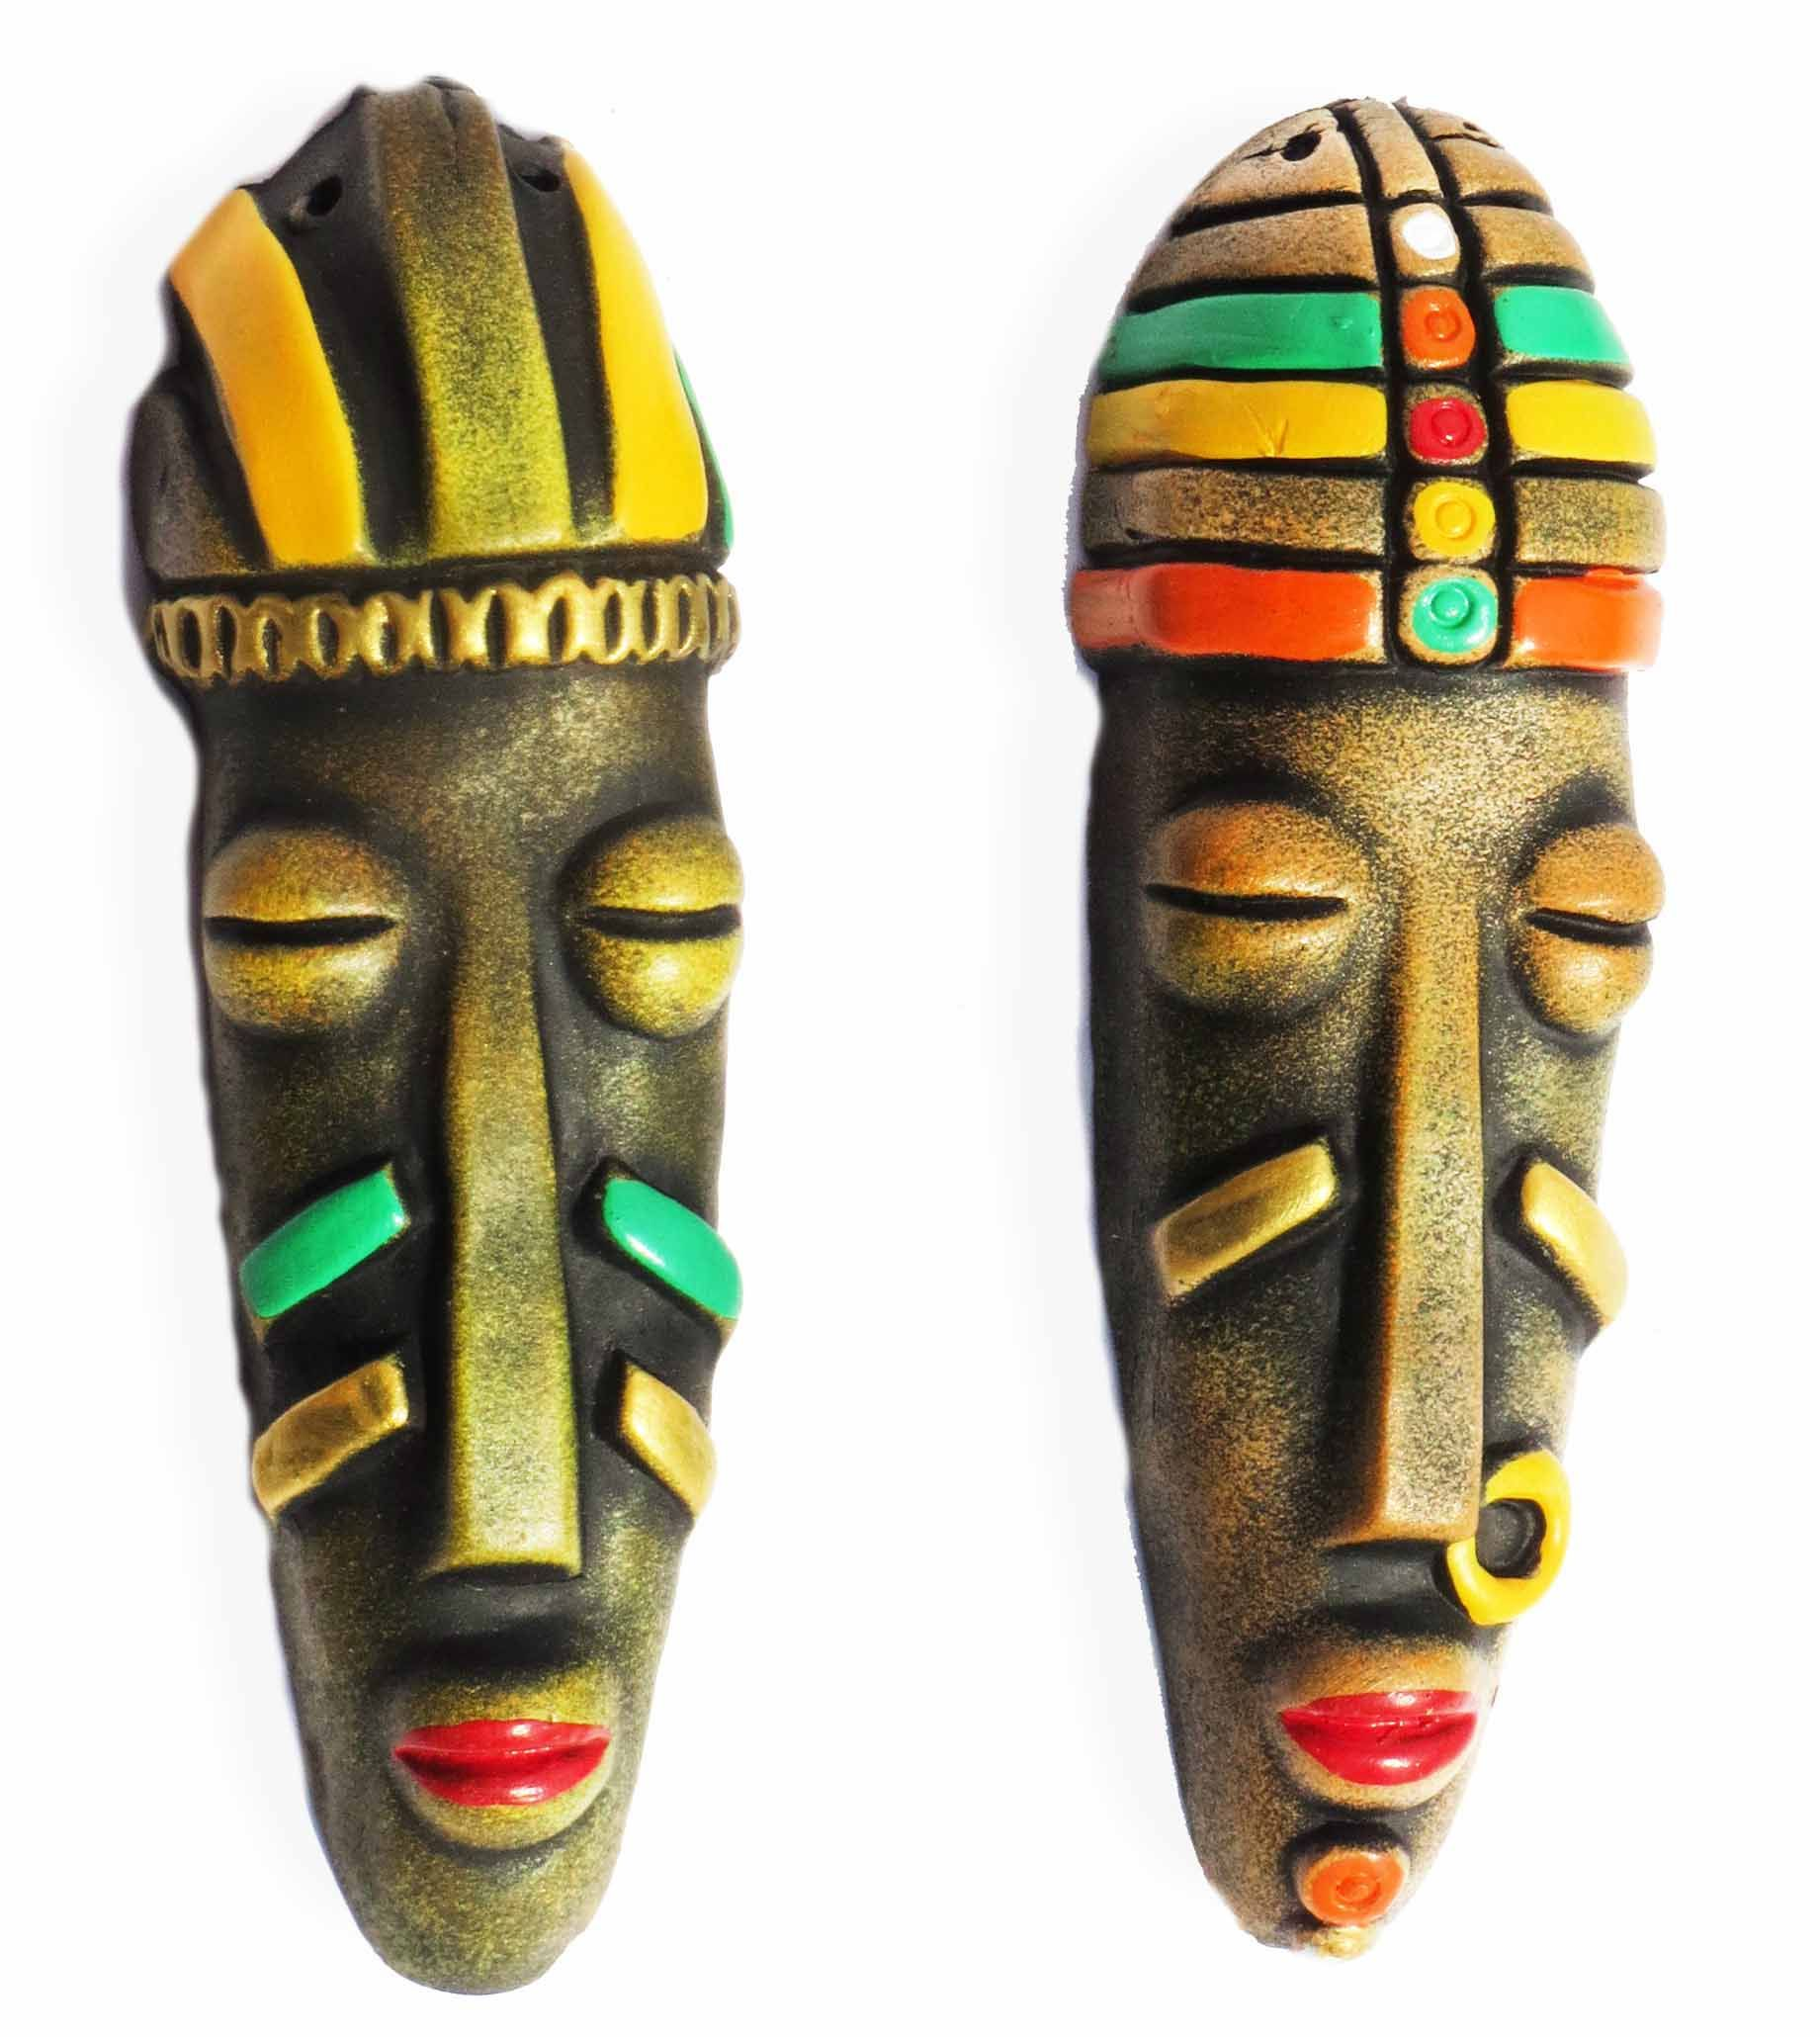 Buy Home Decor Products Online Only At Craftnshop Were You Get The Latest Items